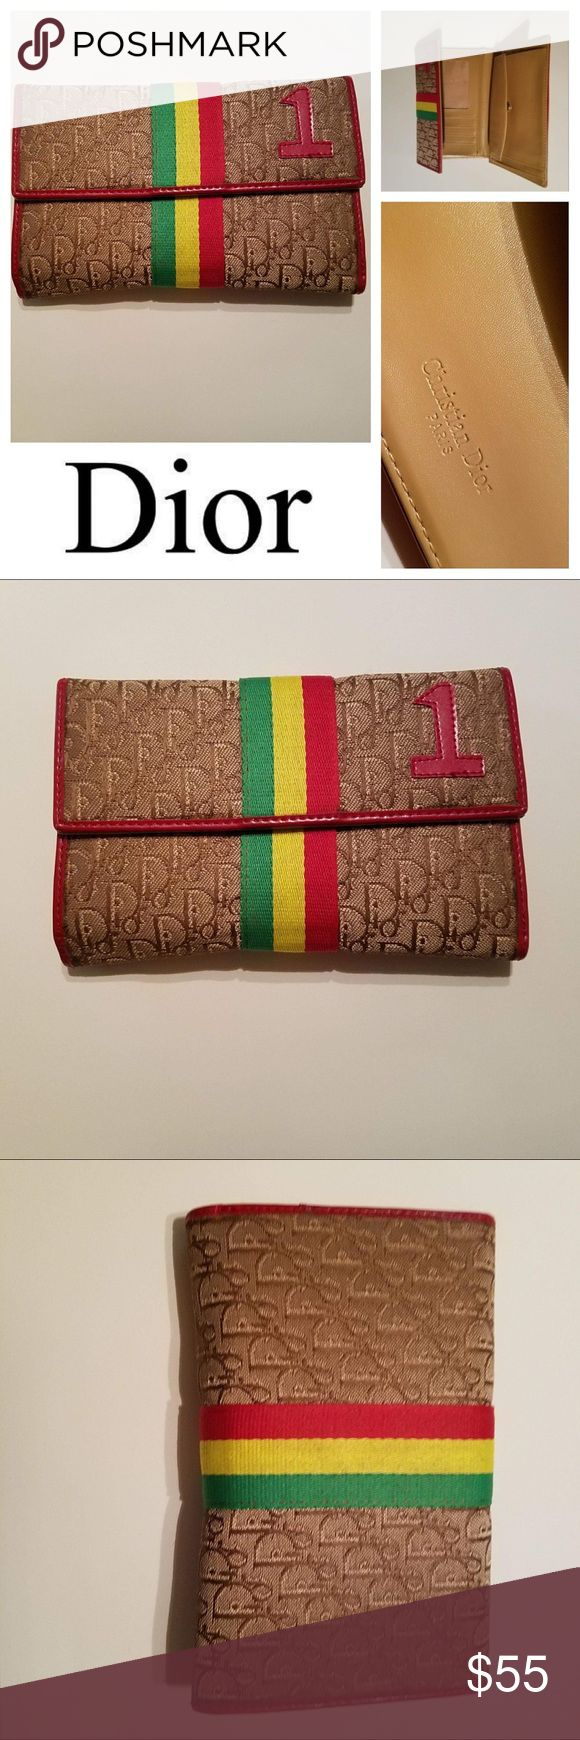 Vintage CHRISTIAN DIOR Rasta Logo Wallet Vintage early 2000s Dior Rasta Wallet. Flap over front, inside snap coin, billfold compartment, multi cc slots. Excellent condition Christian Dior Bags Wallets